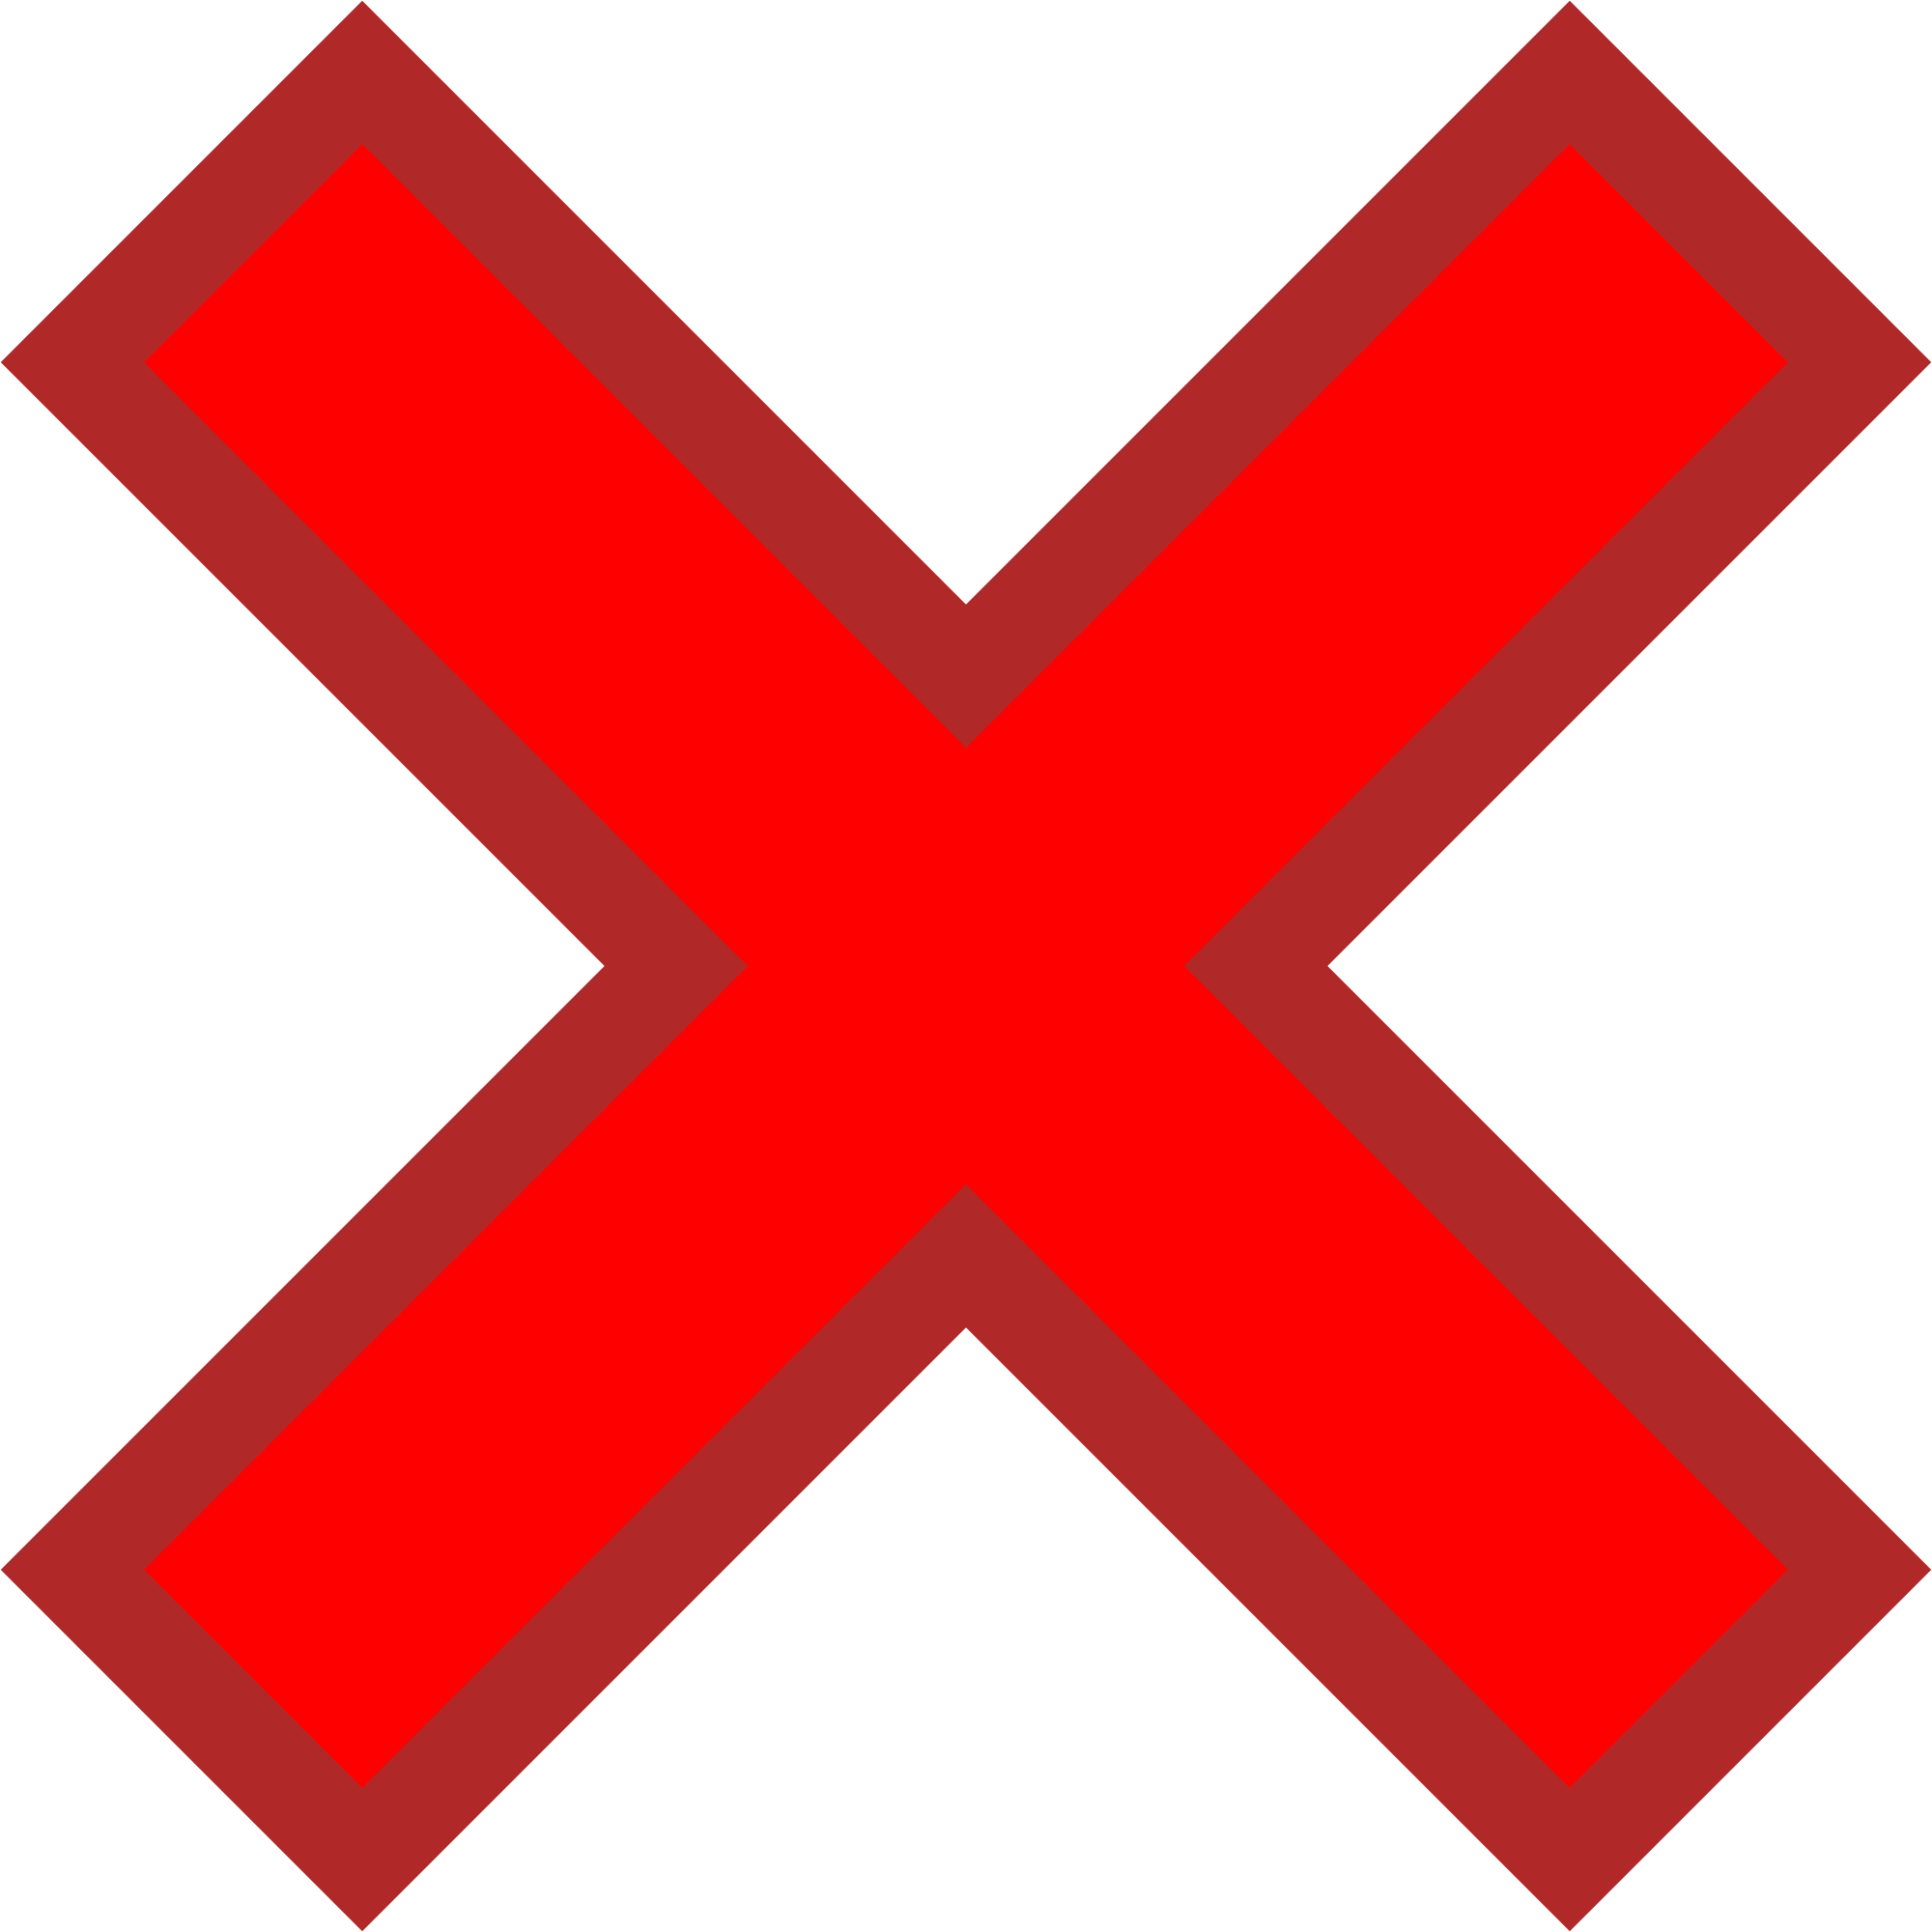 Red no sign png. File symbol wikimedia commons